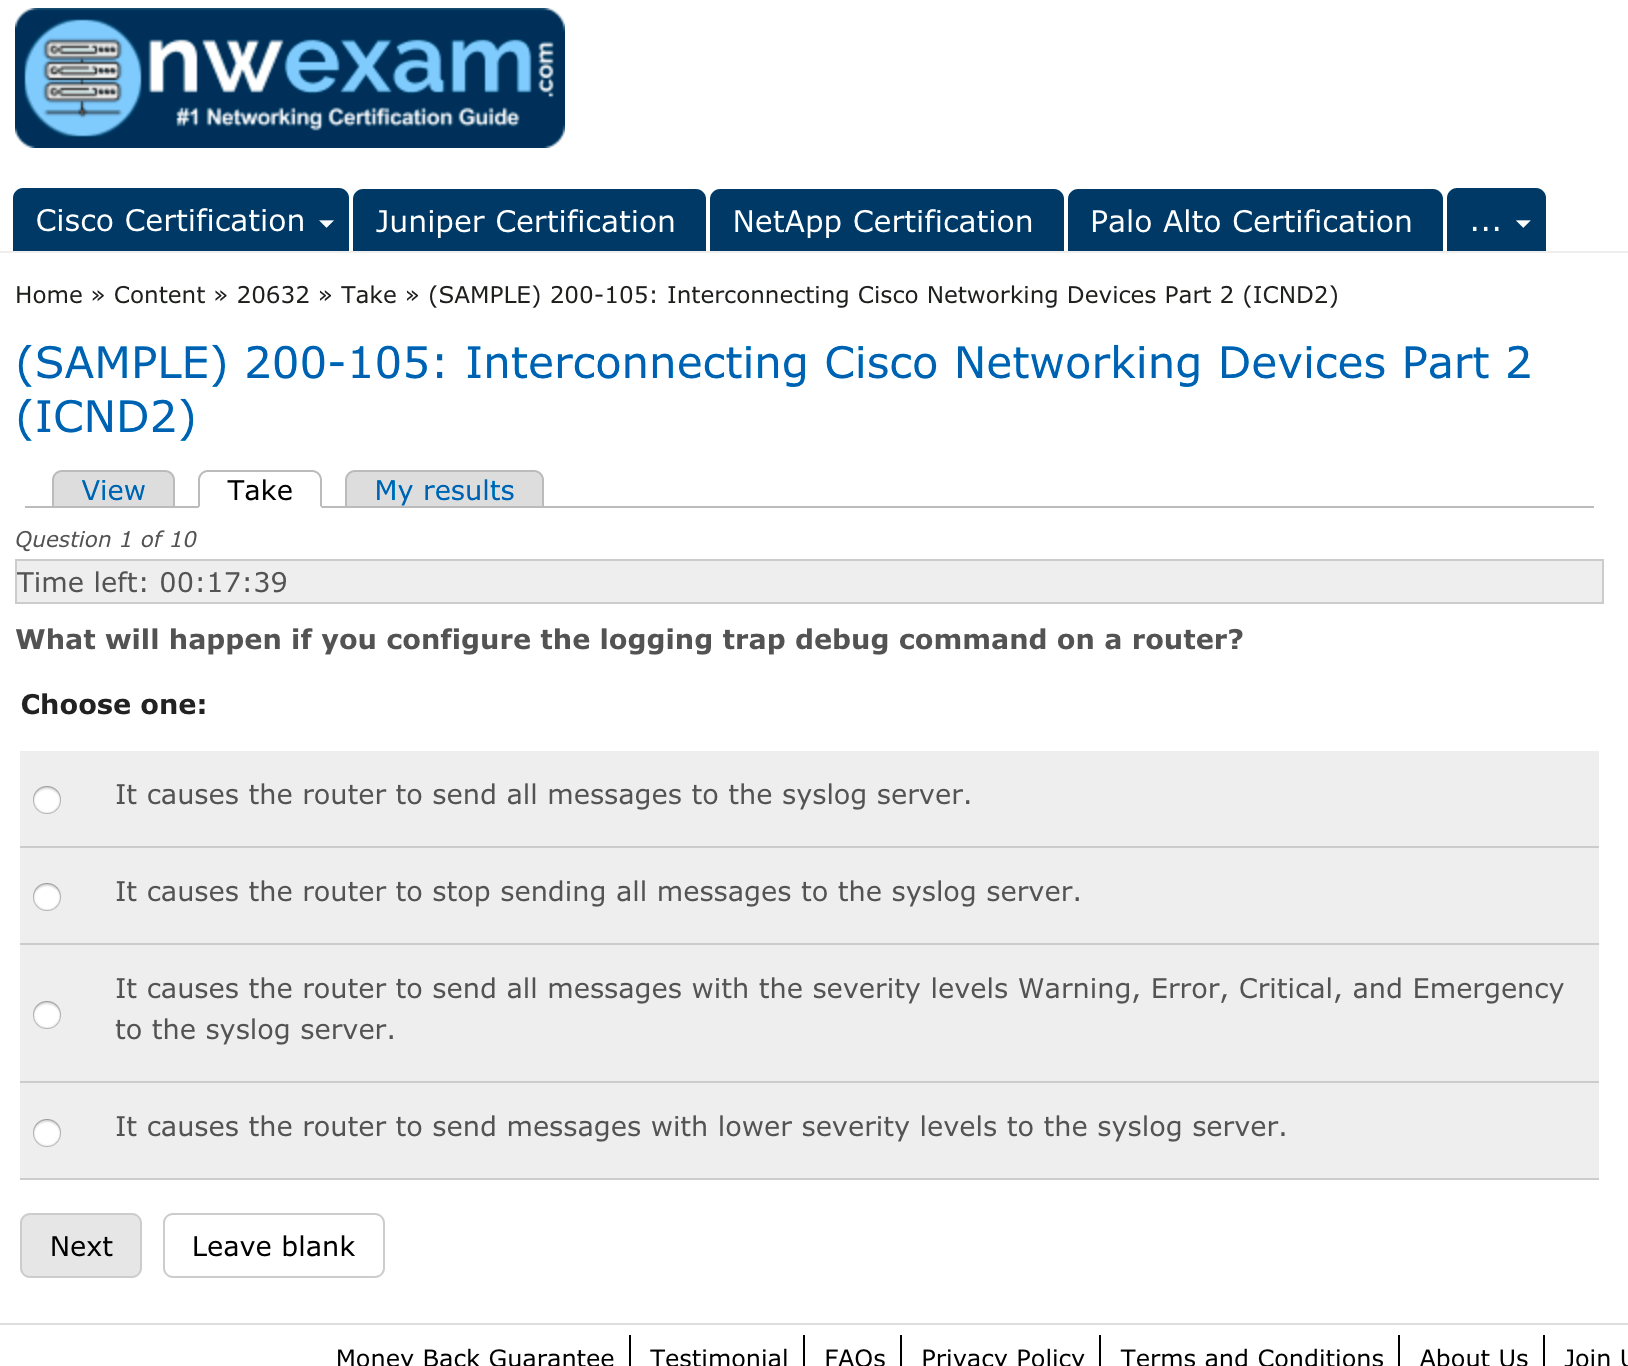 nwexam.com and its basic Interconnecting Cisco Networking Devices Part 2 certification questions